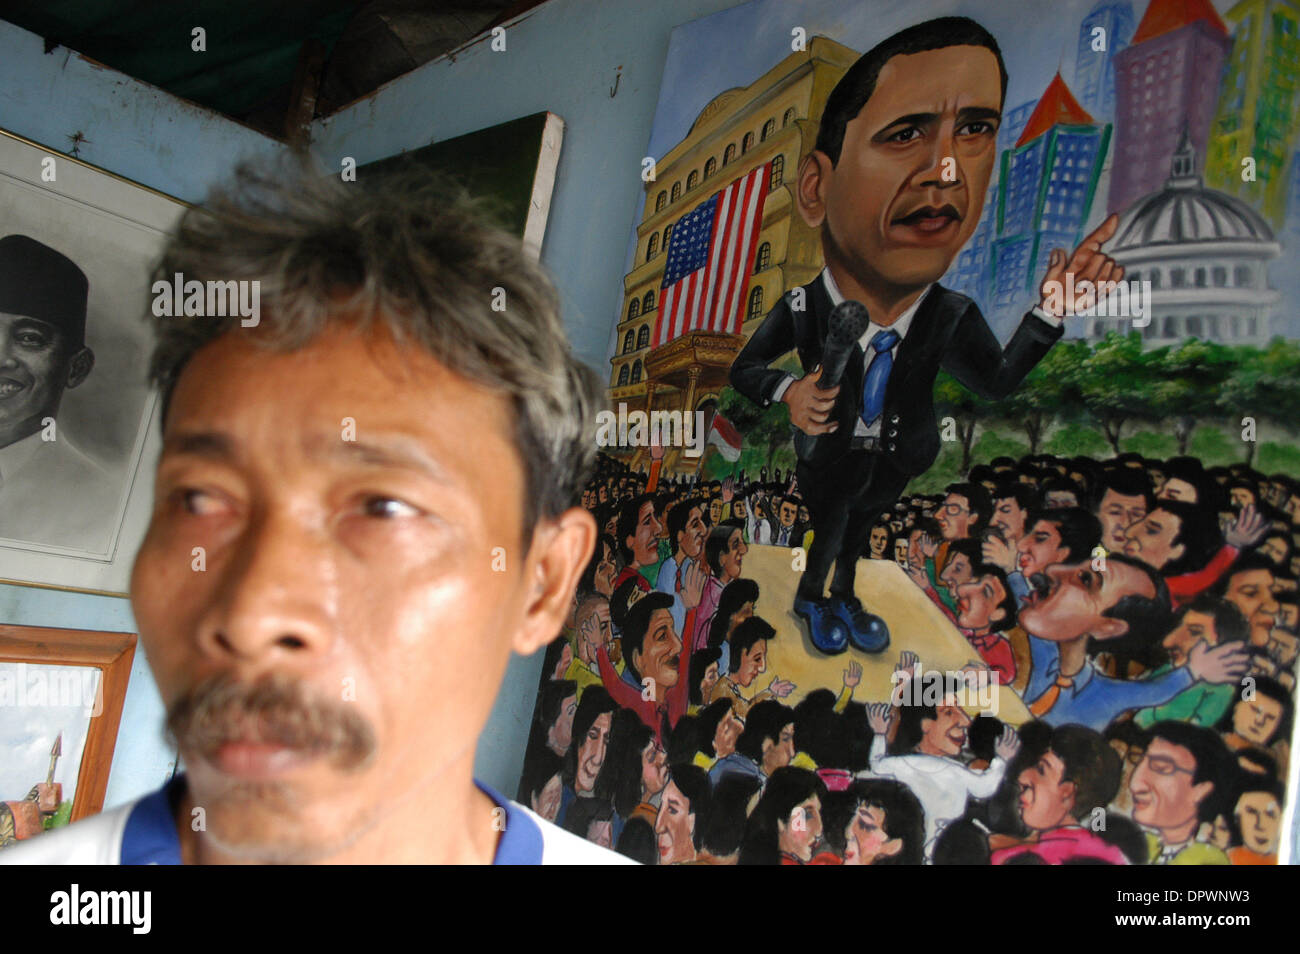 Jan 20, 2009 - Jakarta, Indonesia - A street painter paints a picture of US President Barack Hussein Obama at a vendor in Jakarta, Indonesia, January 20.2009. Barack Hussein Obama claimed his place in history as America's first black president, summoning a dispirited nation to unite in hope against the 'gathering clouds and raging storms' of war and economic woe. (Credit Image: © J - Stock Image